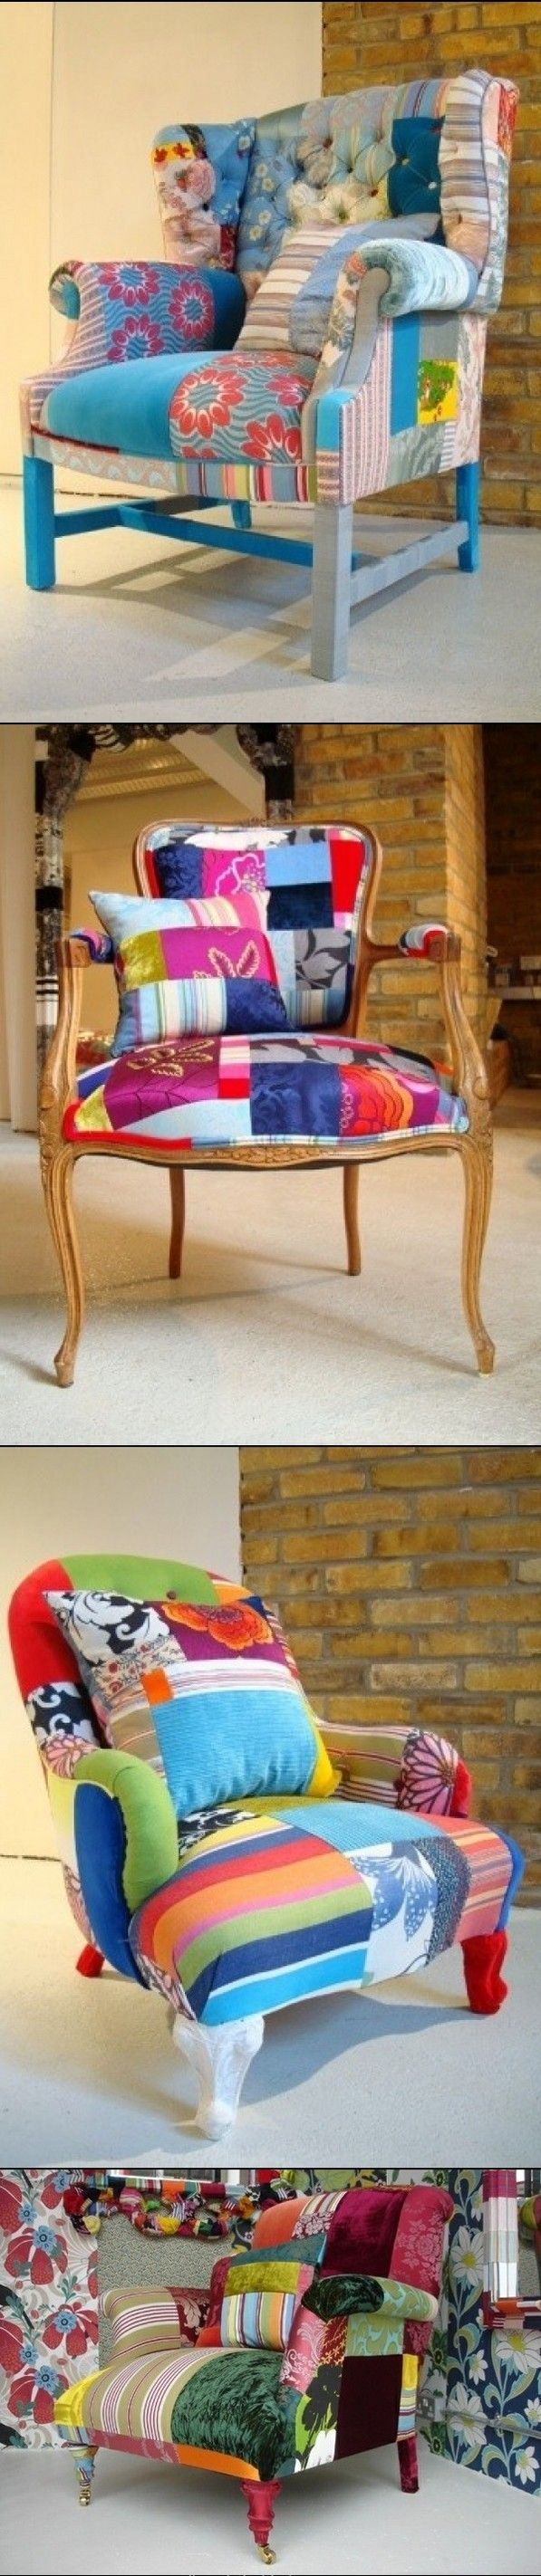 DIY SOFA AND CHAIRS RENOVATION, I love this. Been seeing this style at Hobby Lobby. Great accent piece.